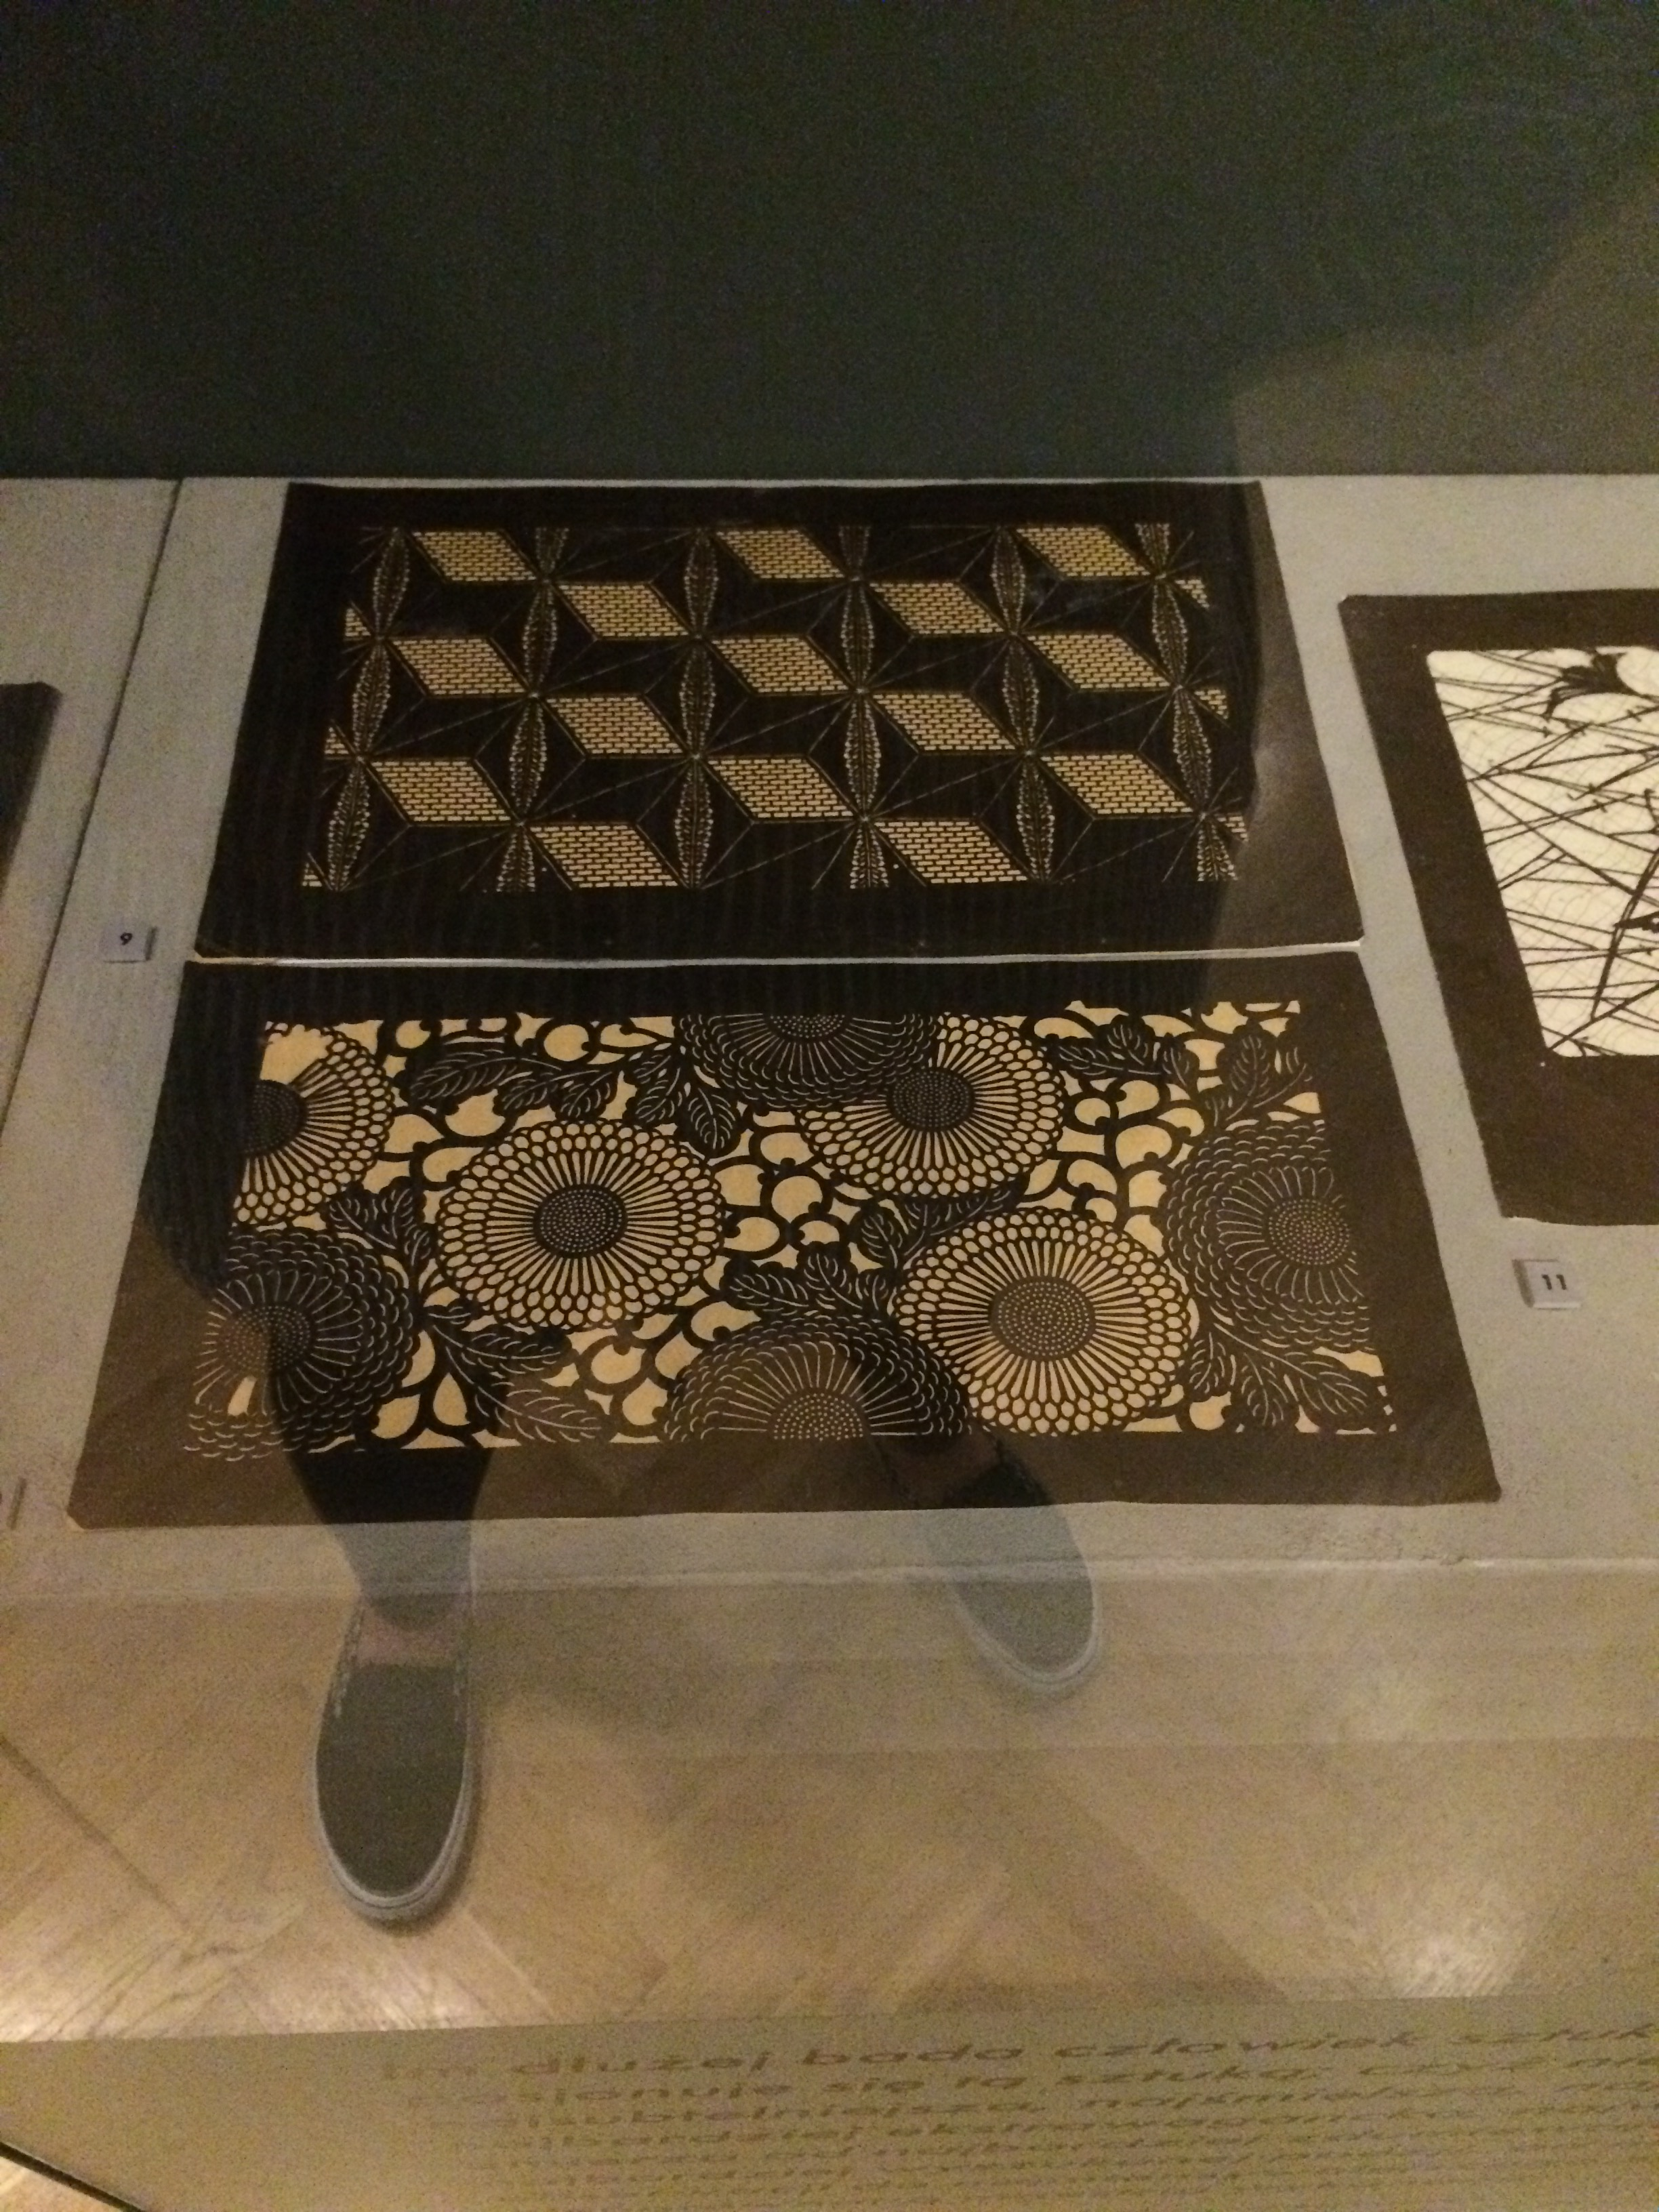 Cut paper, I didn't catch the name of the artist who created these.